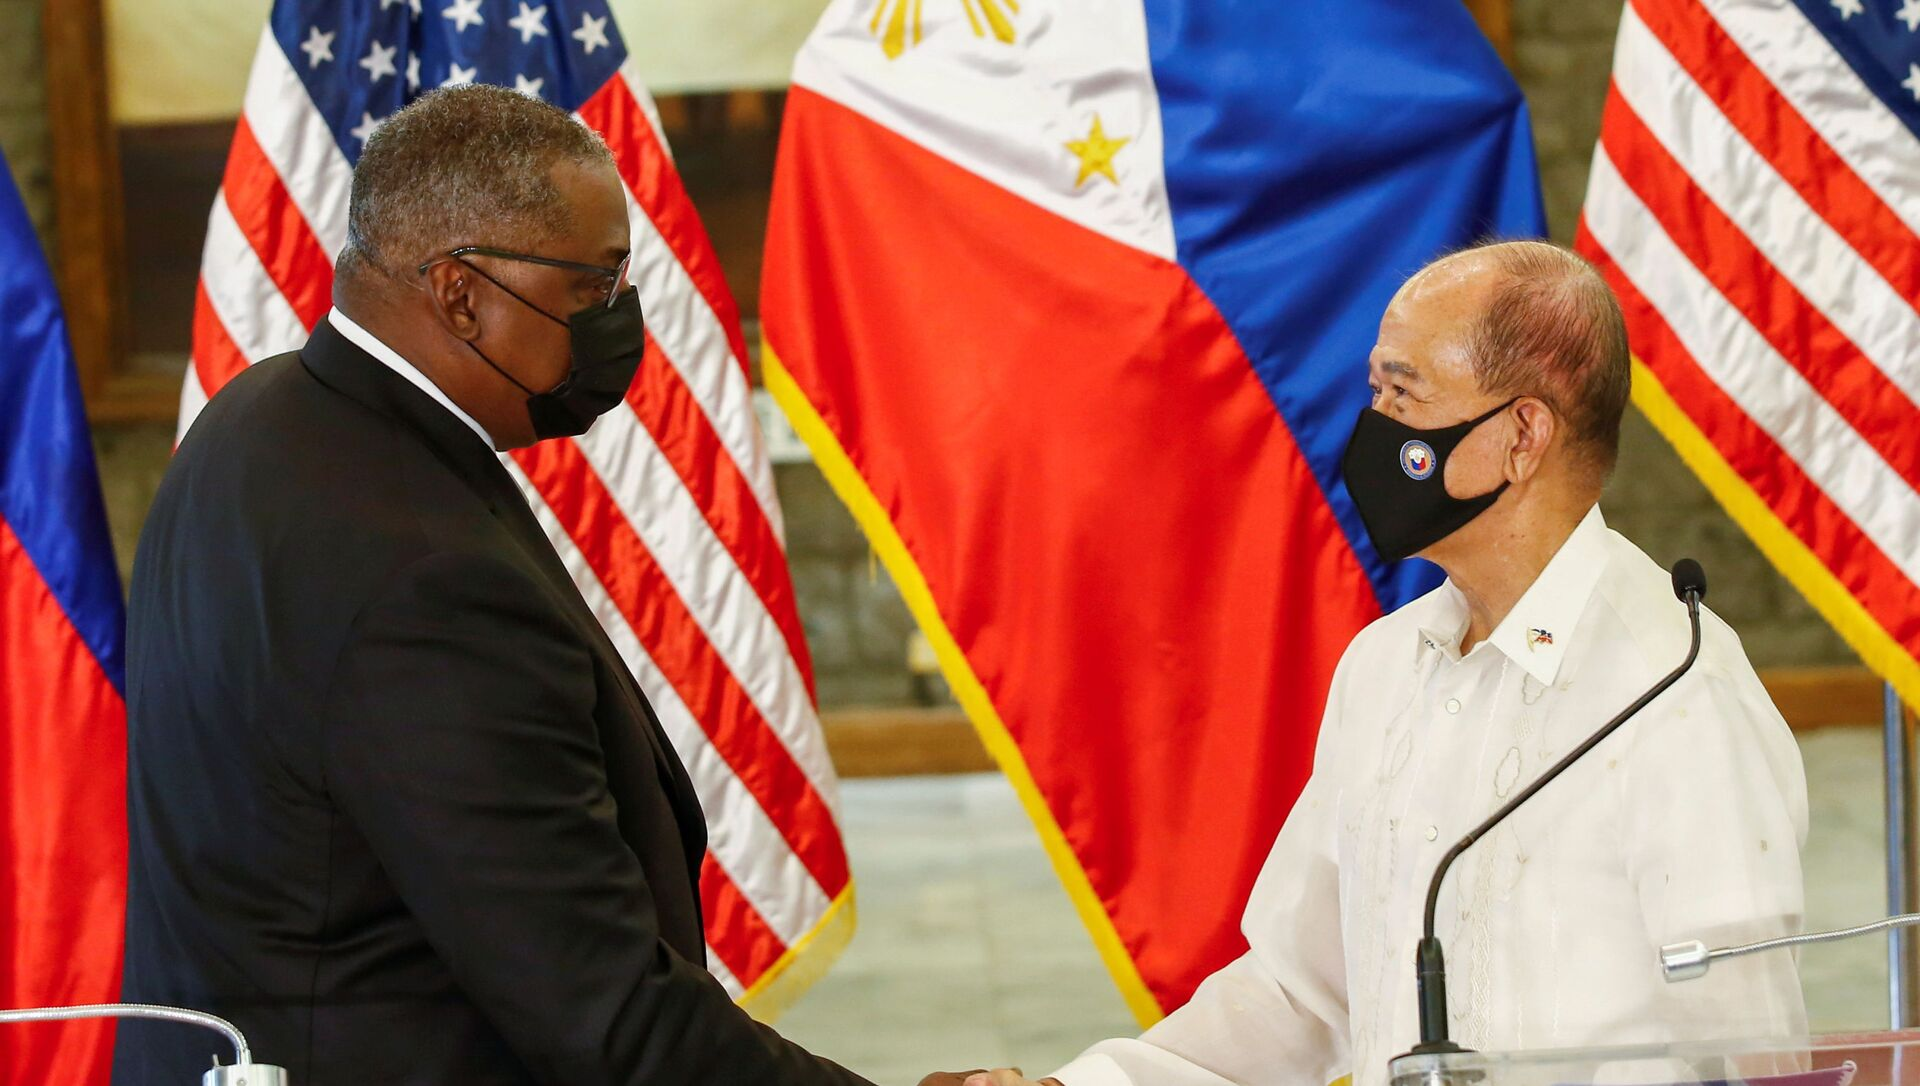 United States Defense Secretary Lloyd Austin (L) and Philippines' Defense Secretary Delfin Lorenzana (R) shake hands after a bilateral meeting at Camp Aguinaldo military camp in Quezon City, Metro Manila, Philippines, July 30, 2021.  - Sputnik International, 1920, 30.07.2021